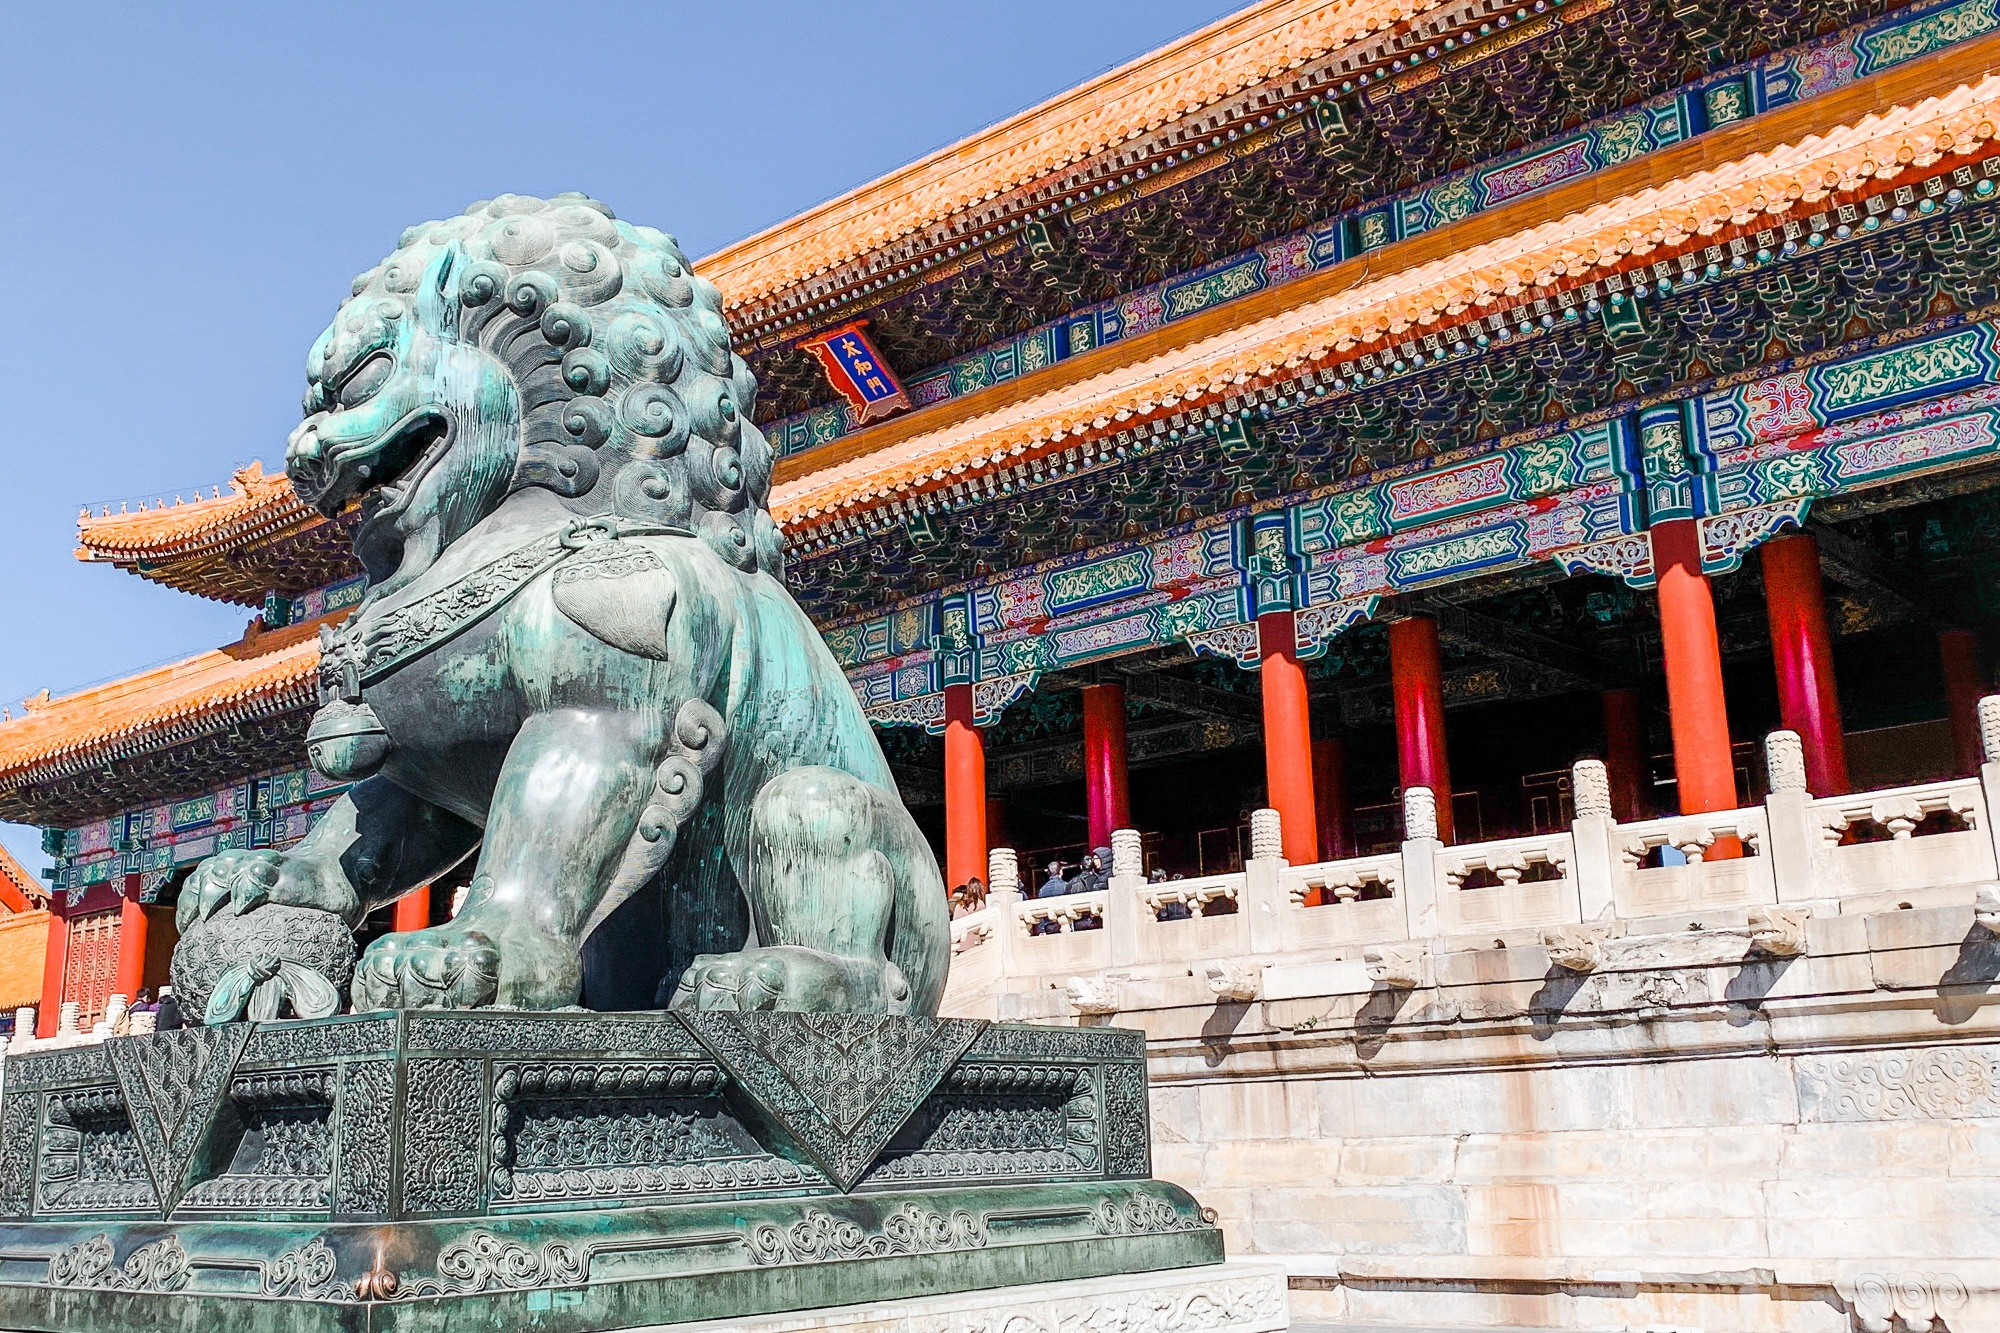 Lion statue in the Forbidden City in Beijing, China